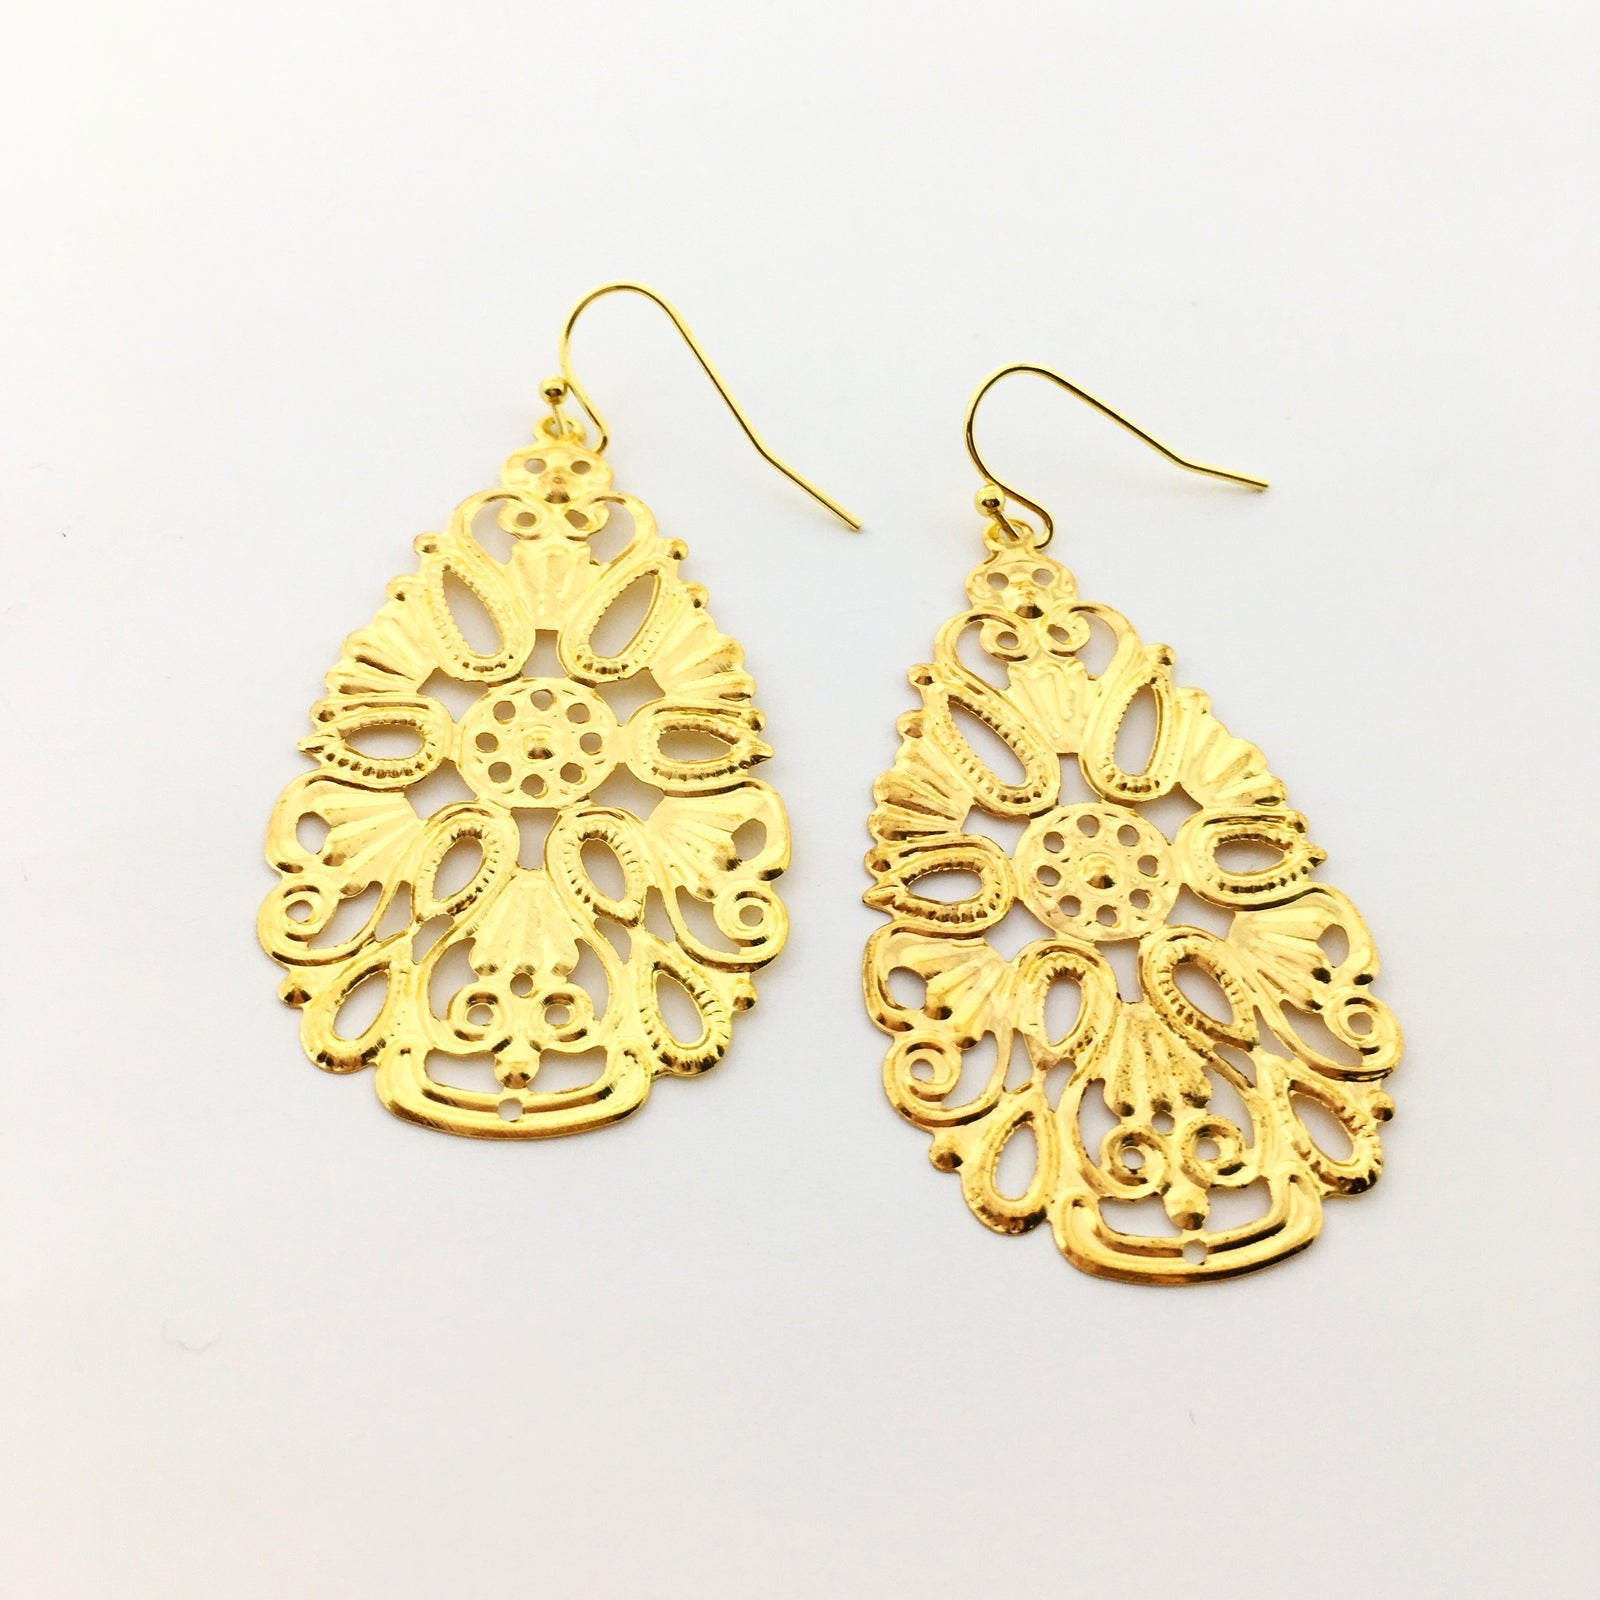 SMALL FILIGREE EARRINGS | GOLD